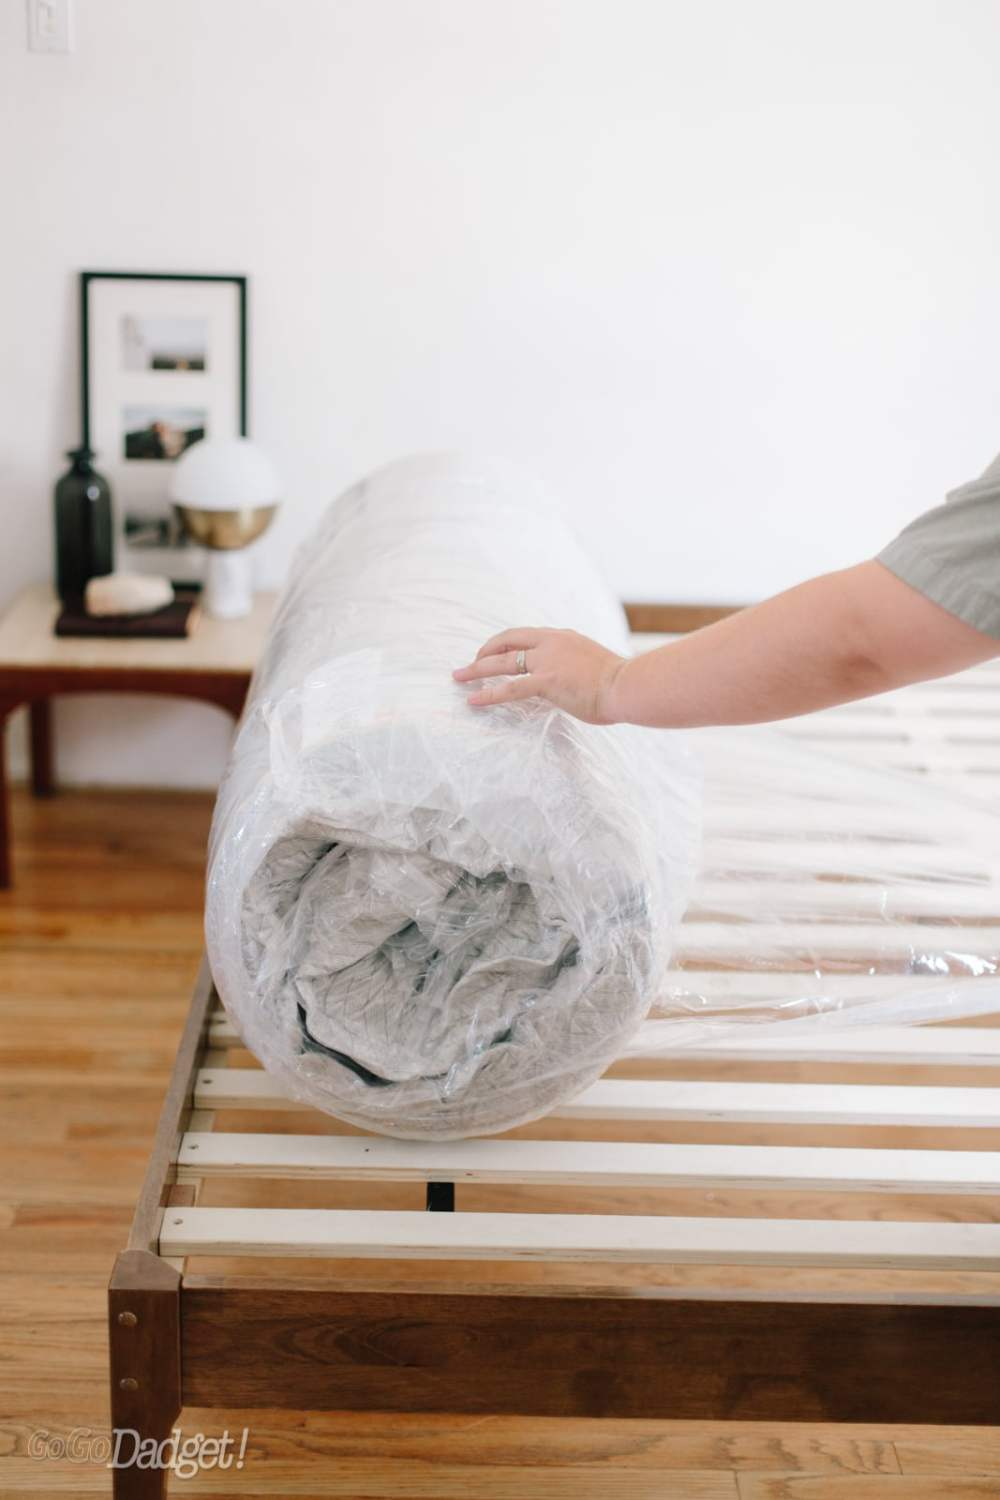 leesa mattress is the real deal for exhausted parents